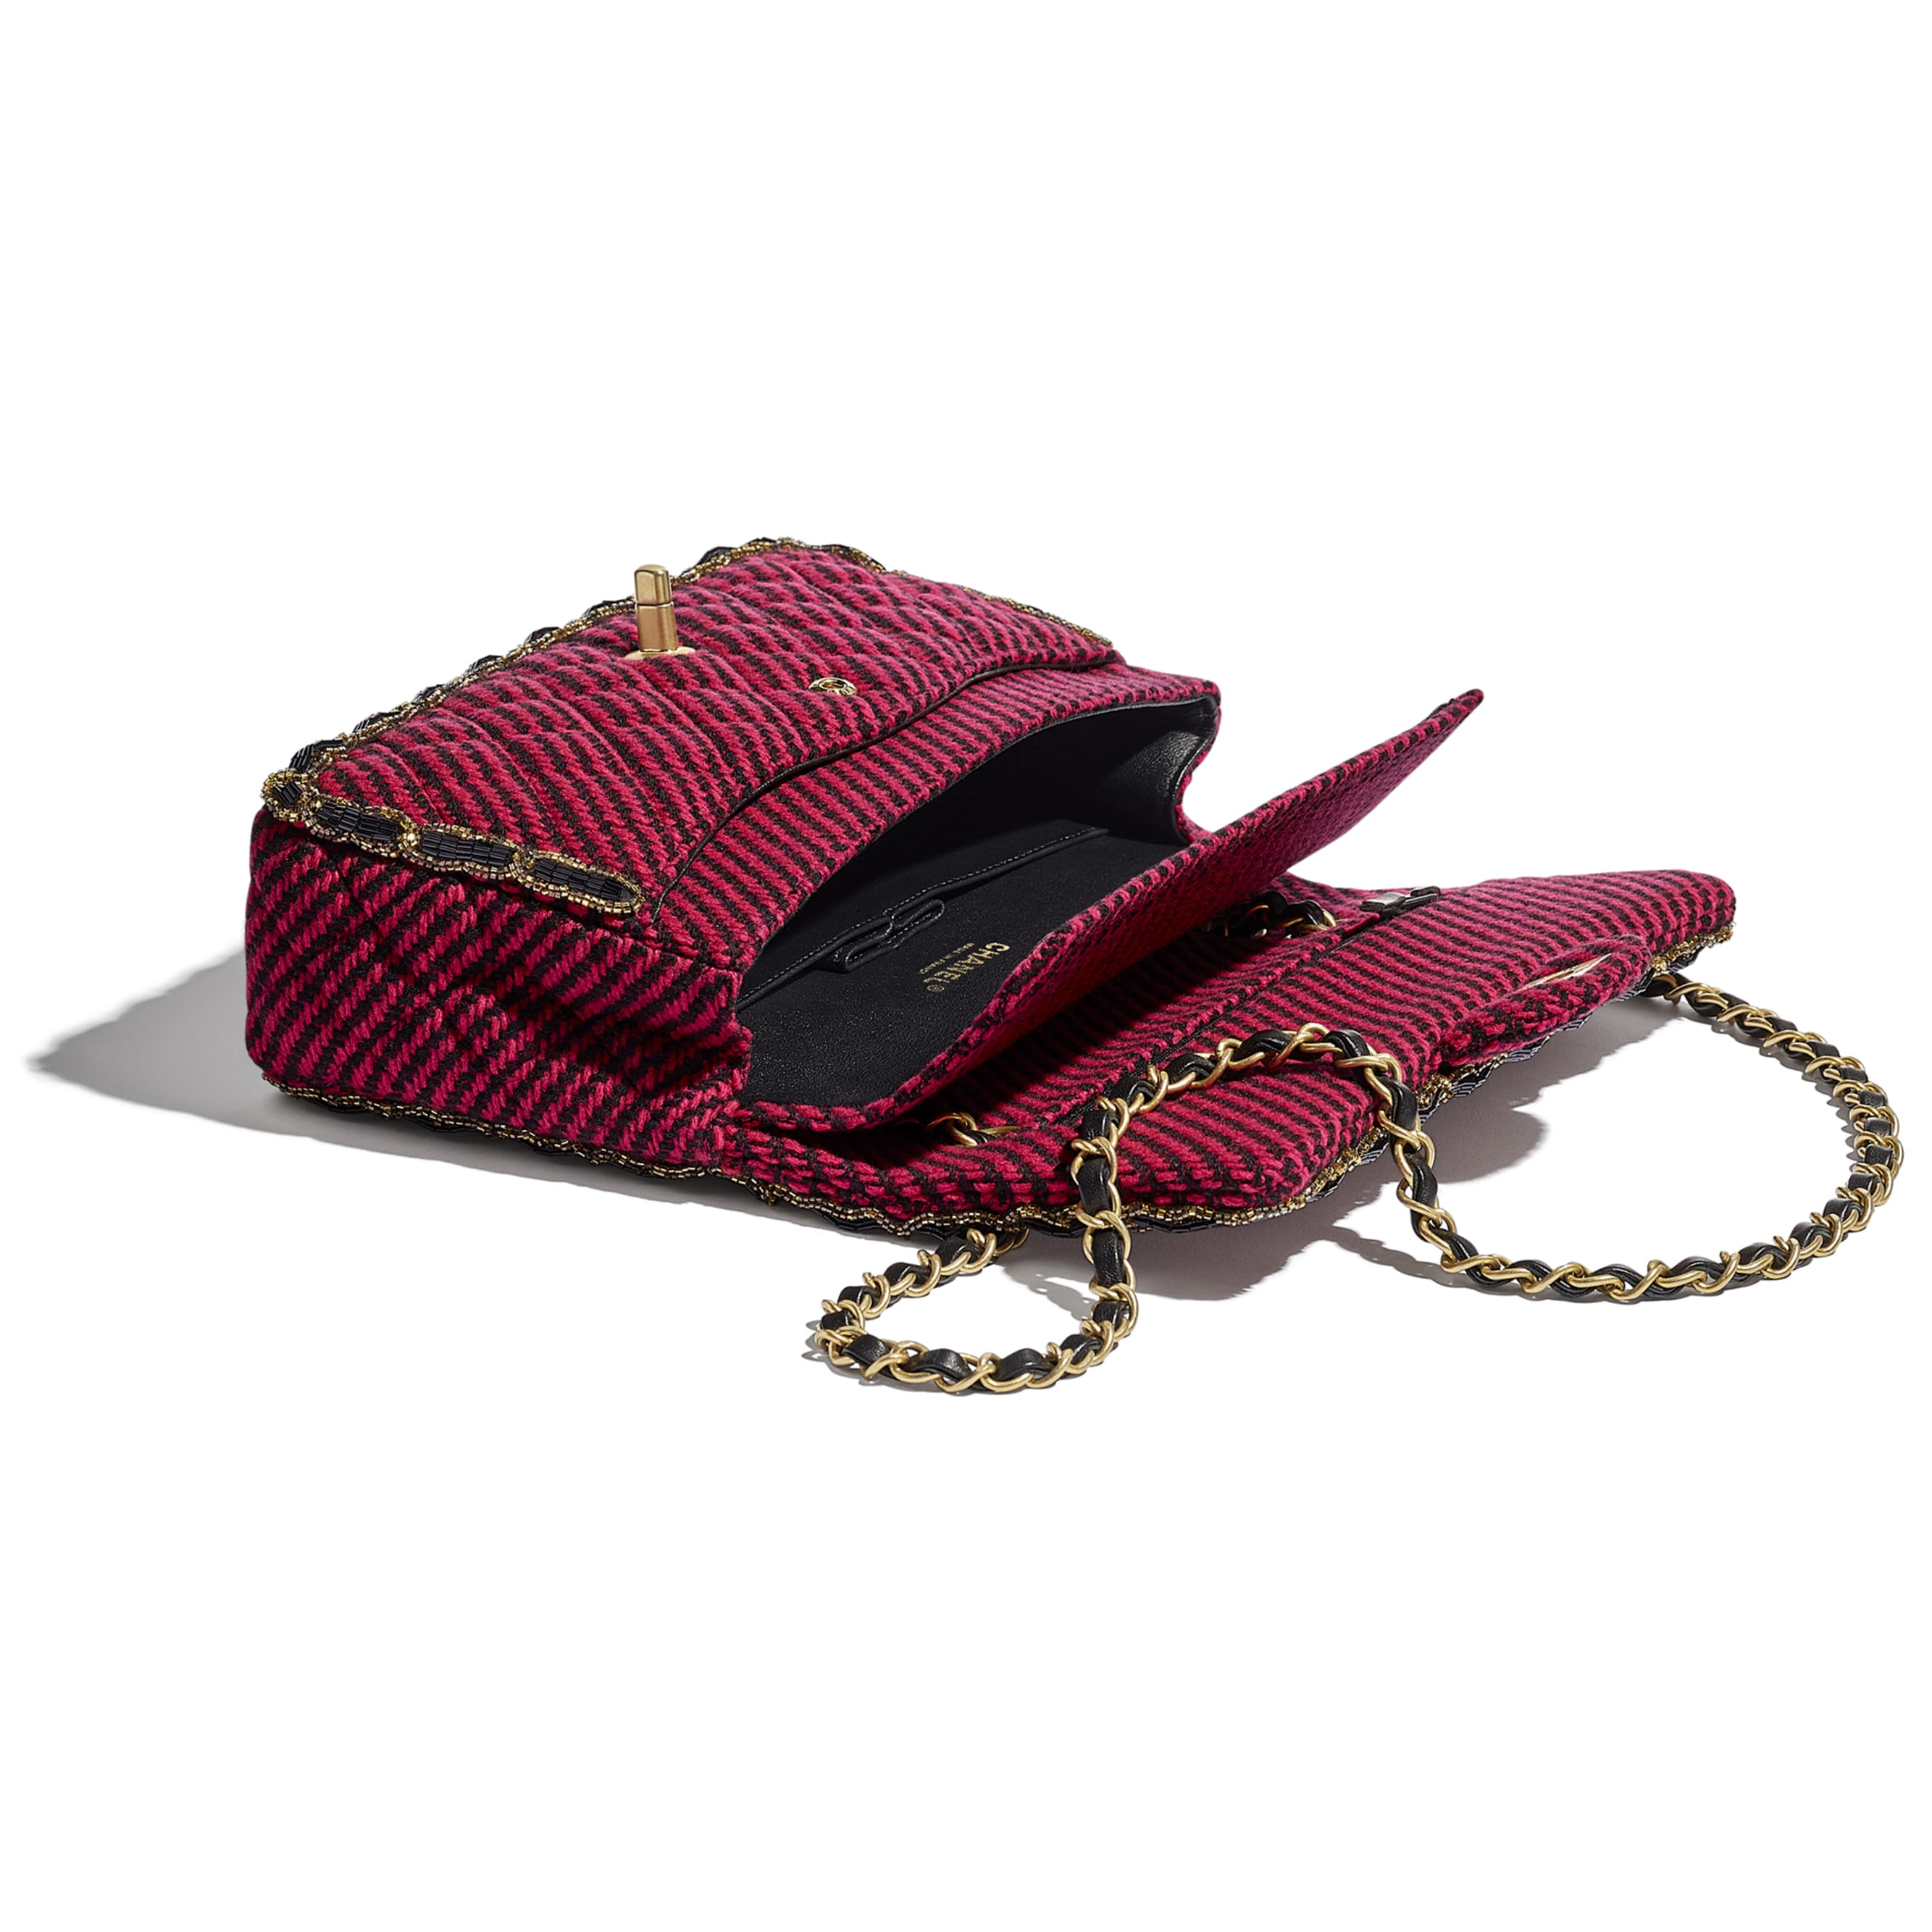 Classic Handbag - Red & Black - Wool Tweed, Glass Pearls & Gold-Tone Metal - CHANEL - Other view - see standard sized version